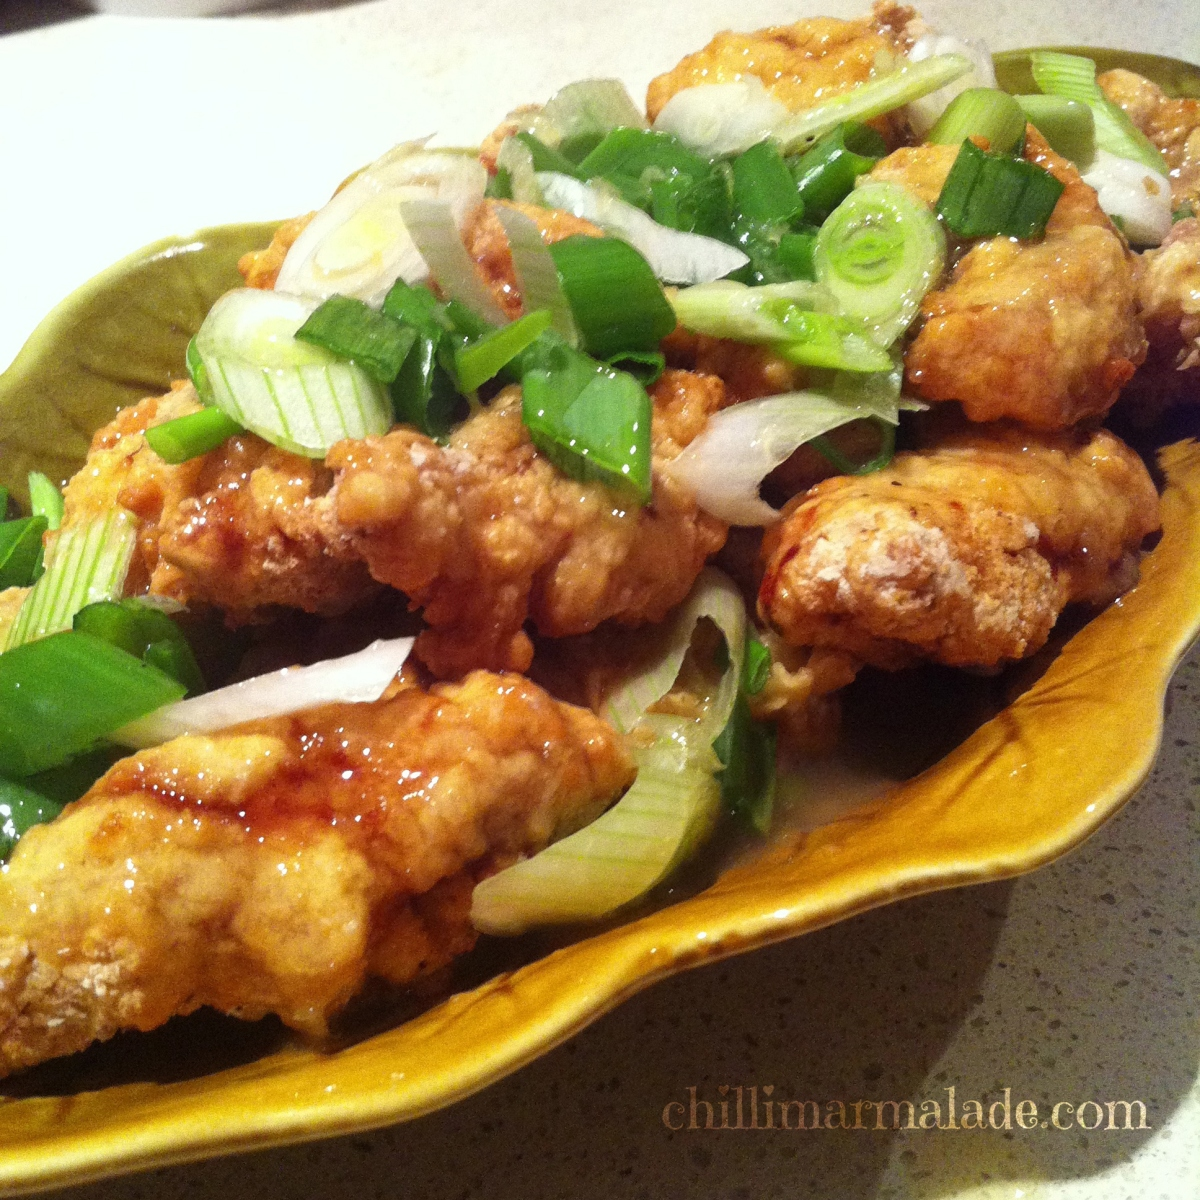 Chinese crispy lemon chicken with stir-fried morning glory